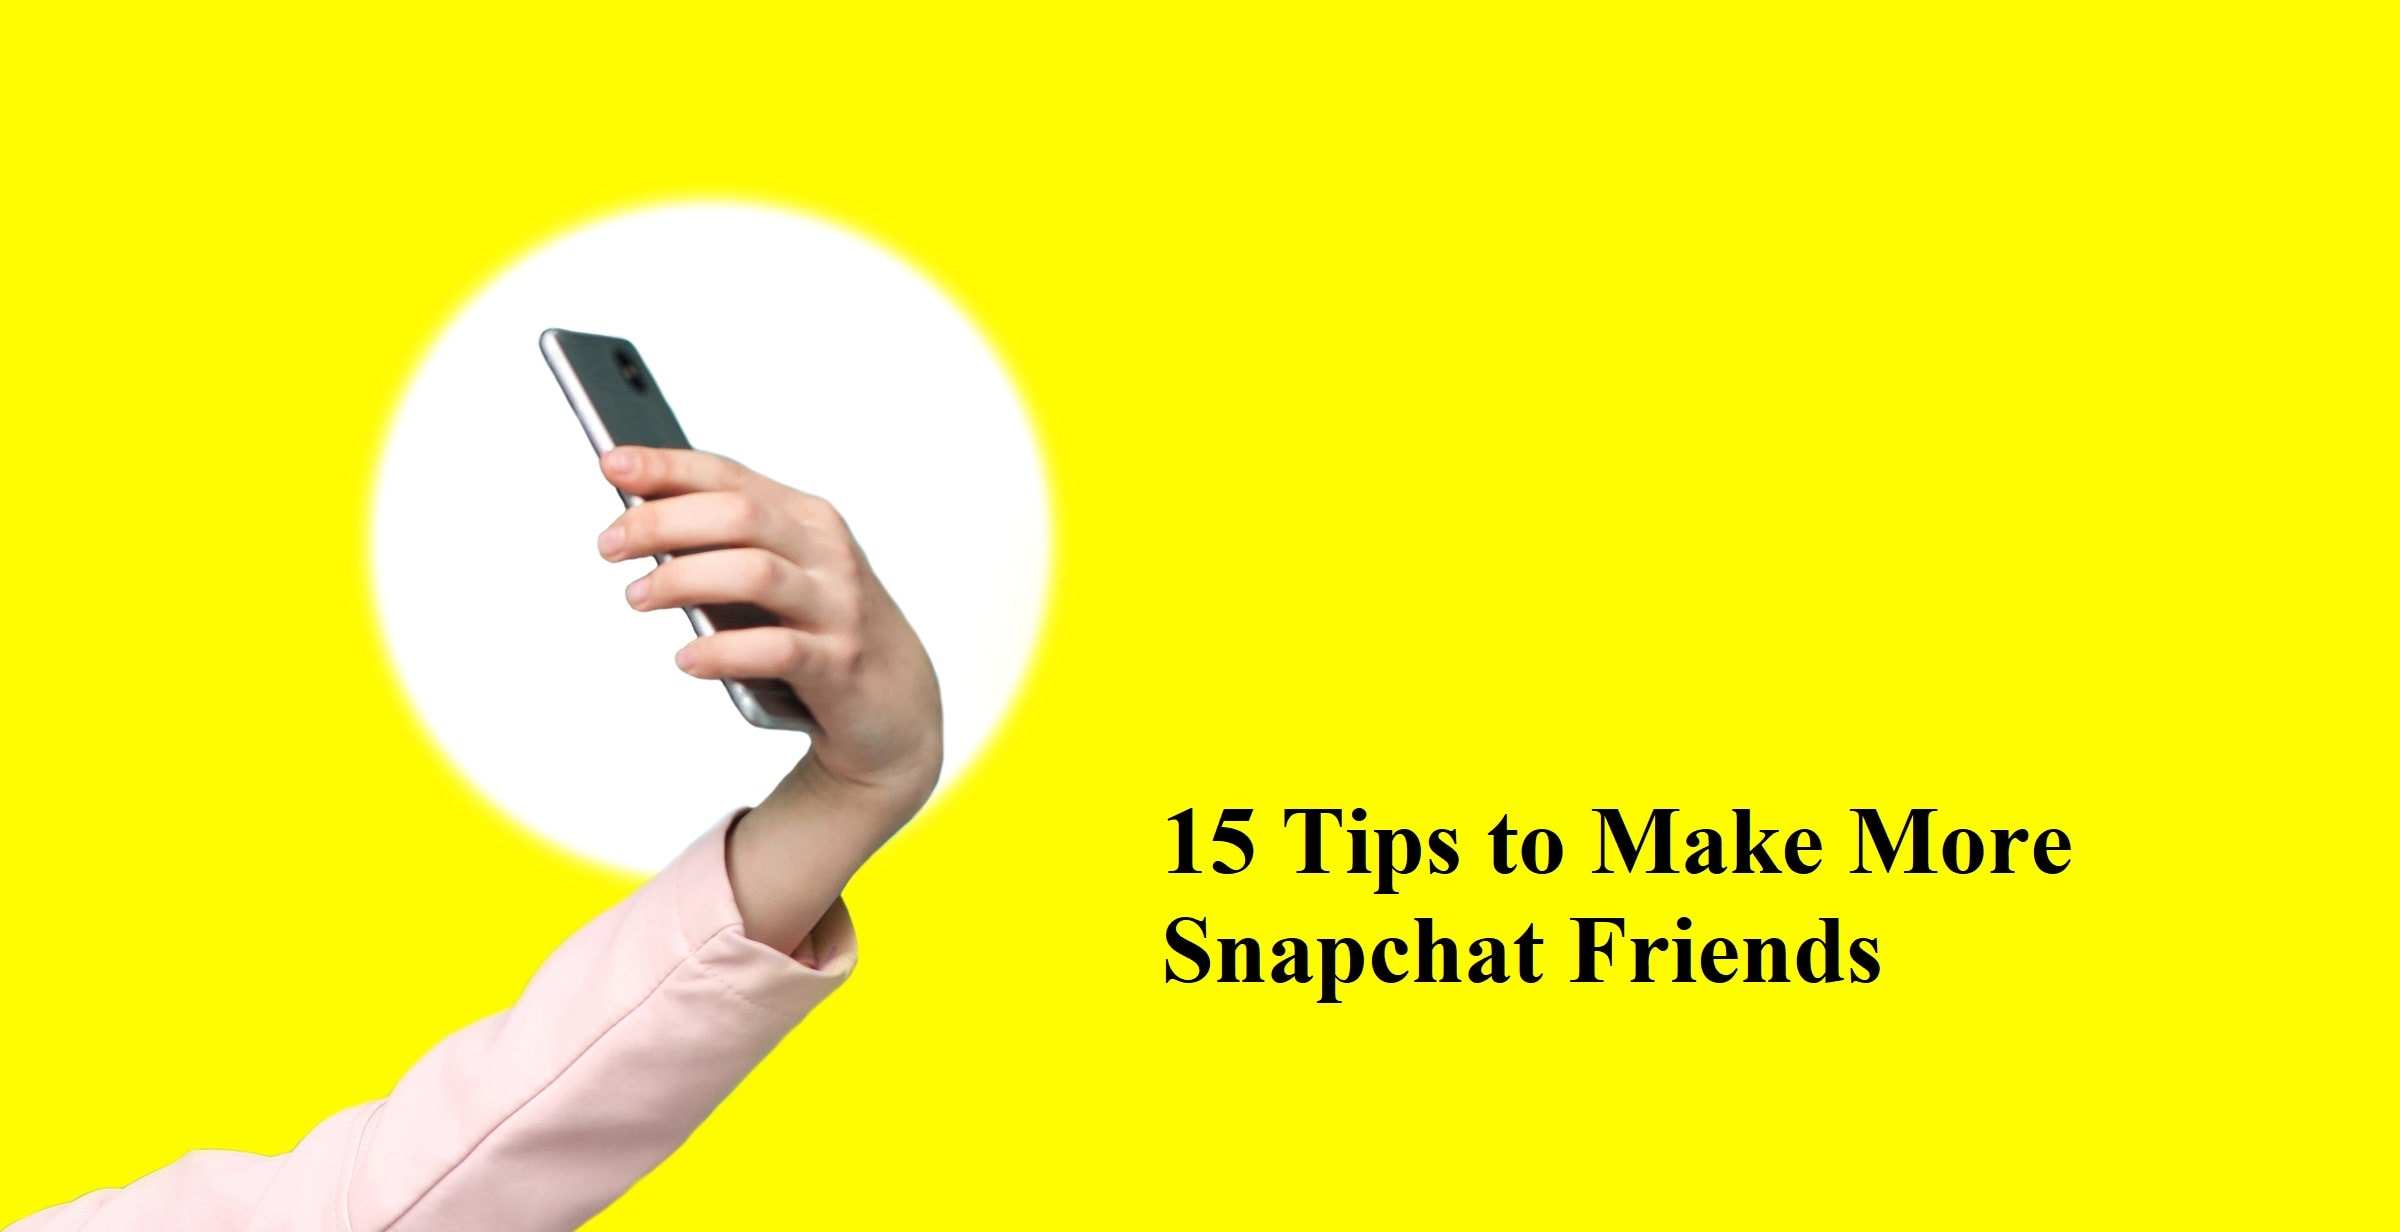 15 Tips to Make More Snapchat Friends